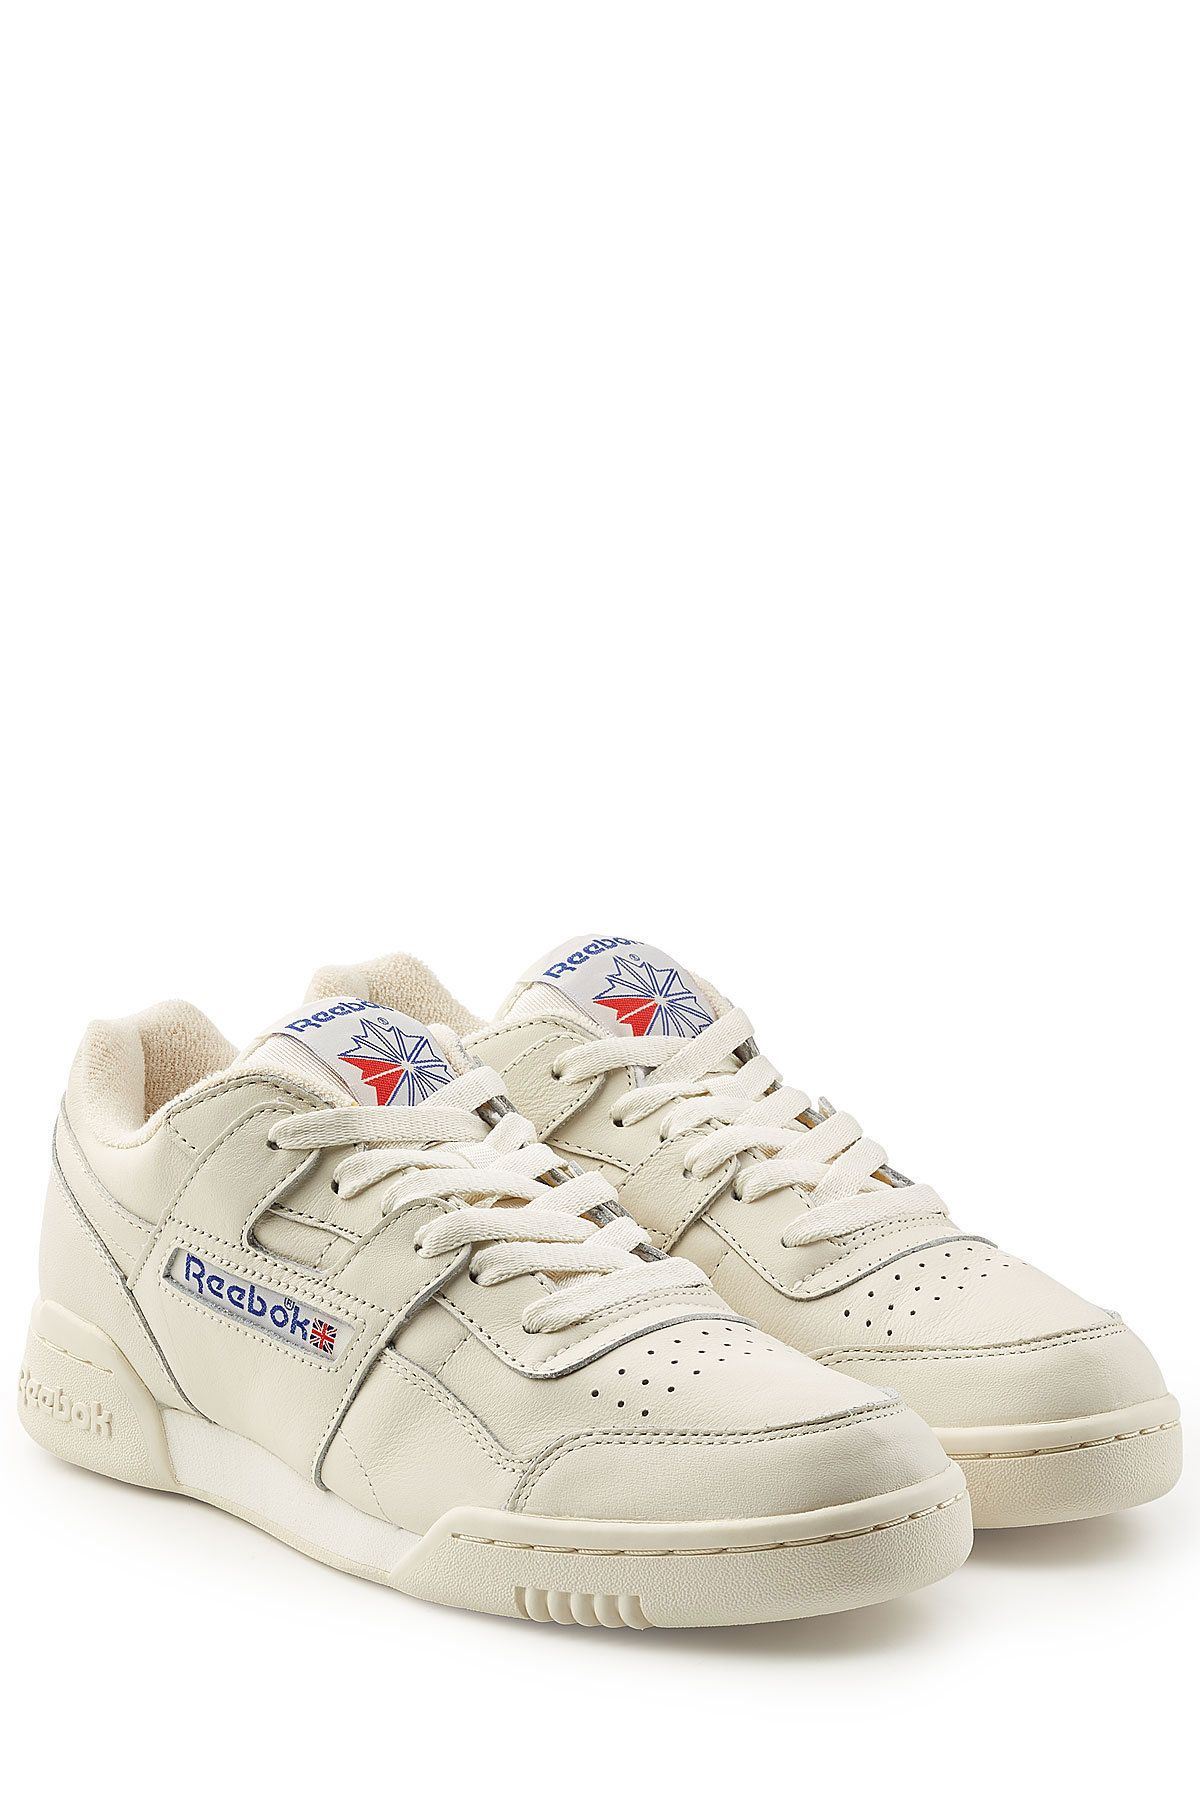 0de2257711a Workout Plus Vintage Sneakers - Reebok